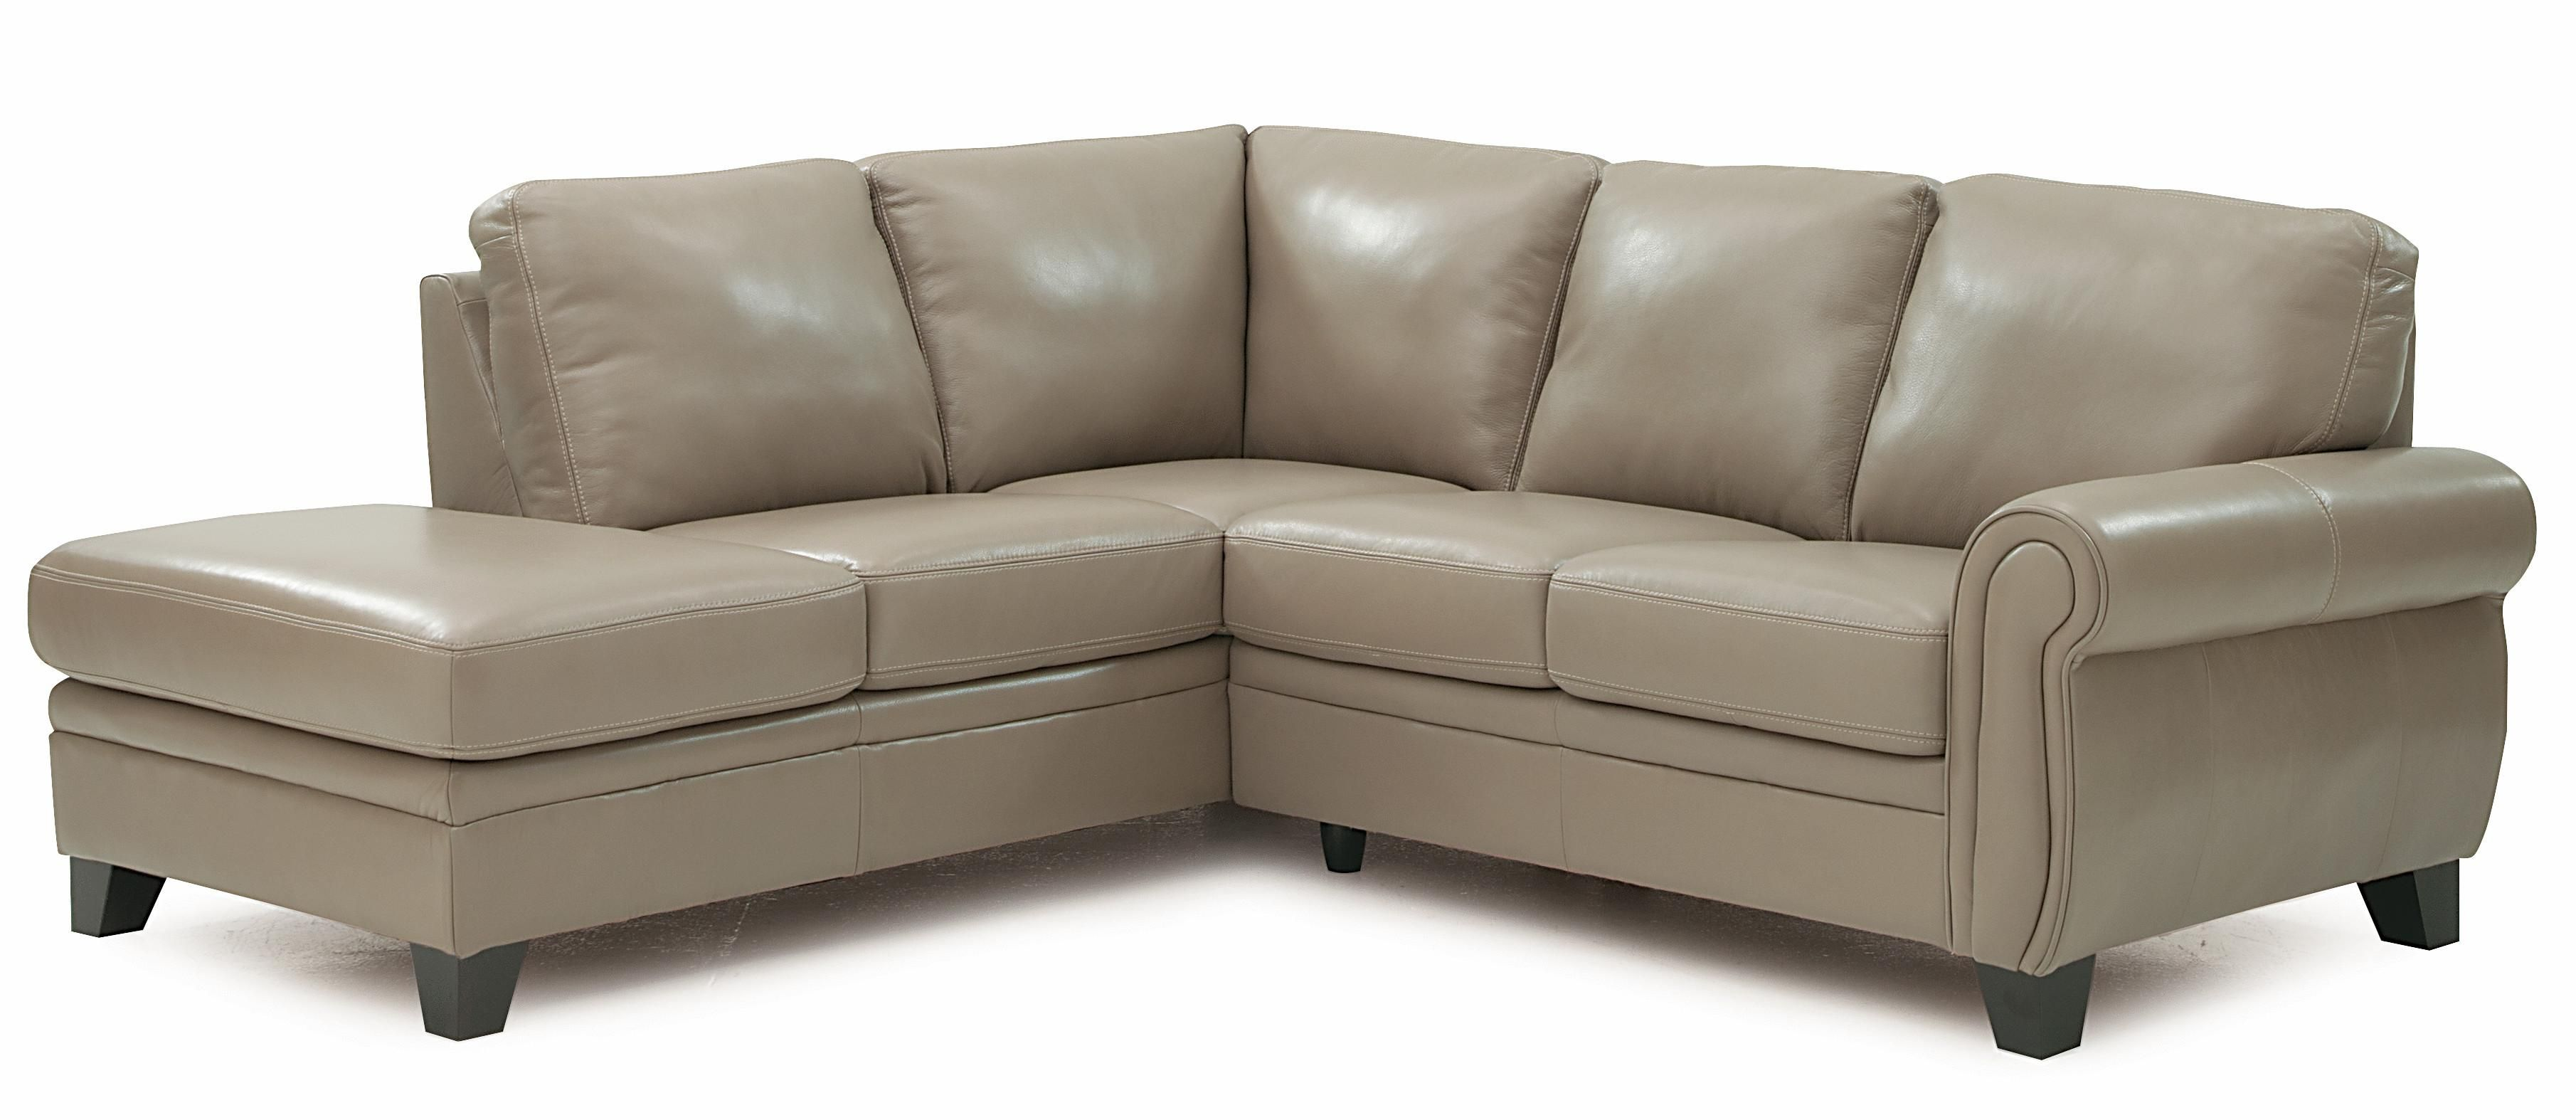 Meadowridge Two Piece Sectional Sofa With Rolled Panel